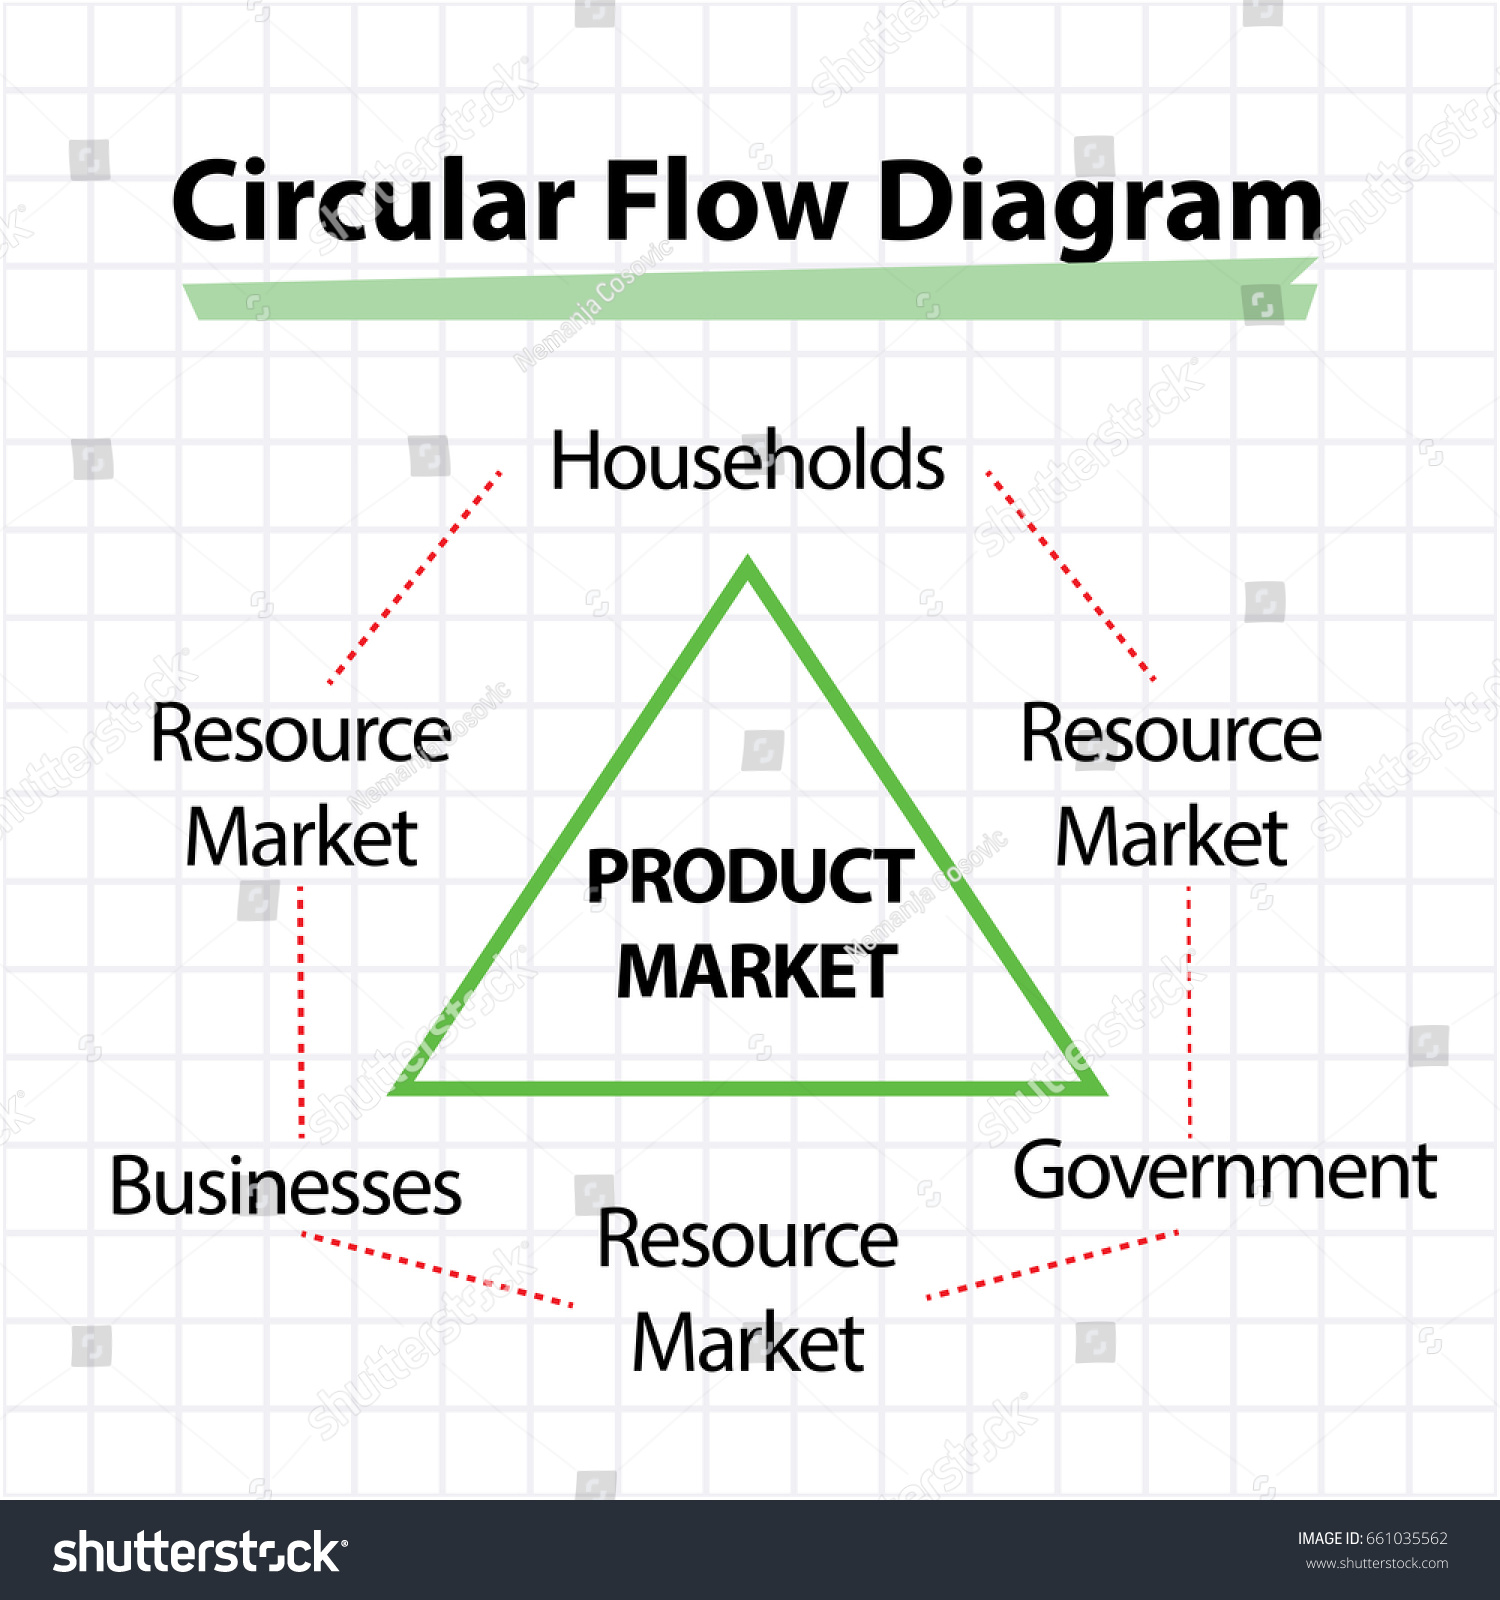 Circular flow diagram product market concept stock vector circular flow diagram product market concept pooptronica